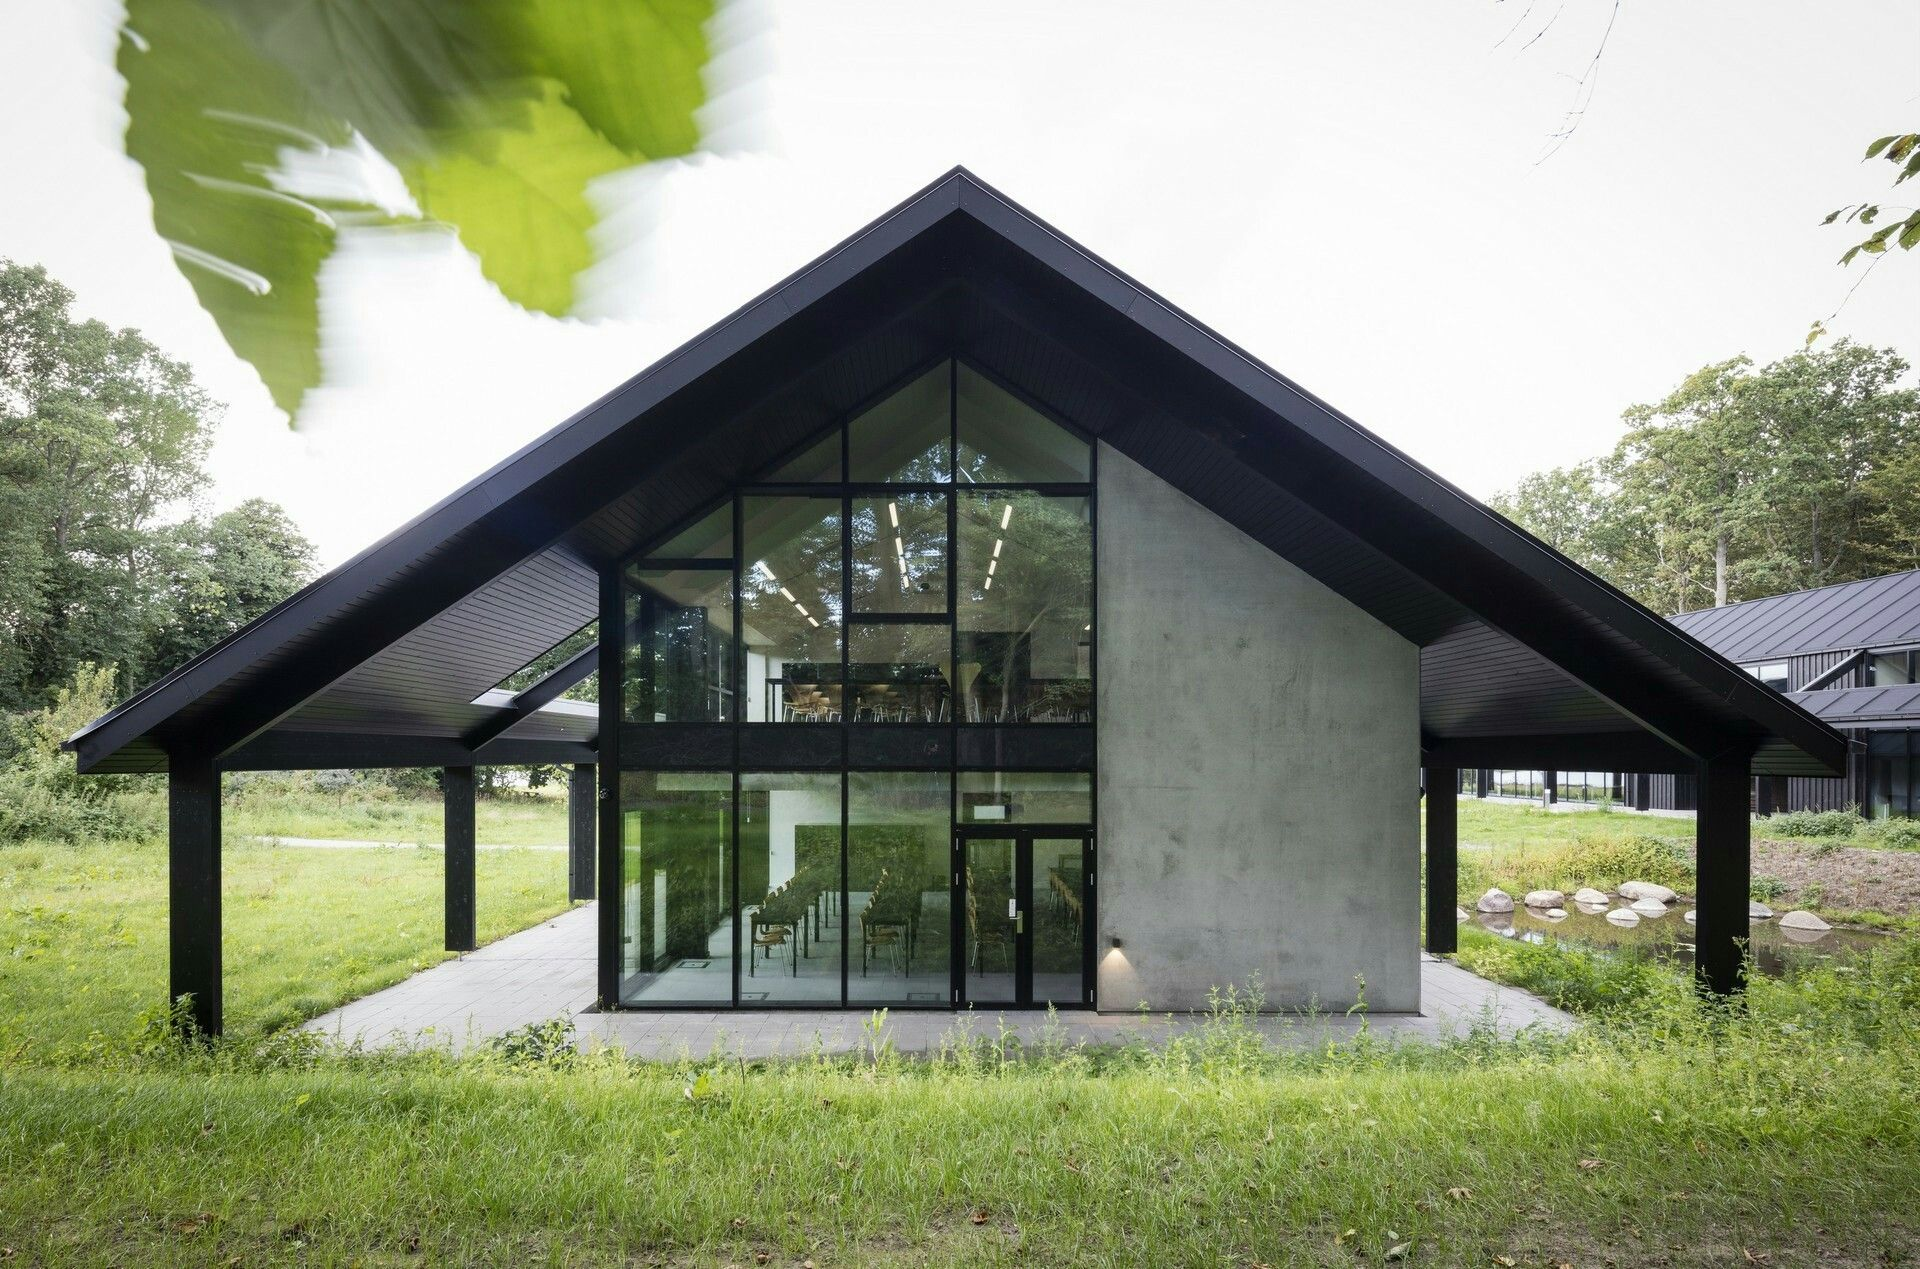 Type 1a classroom residential architecture modern architecture house styles rural house